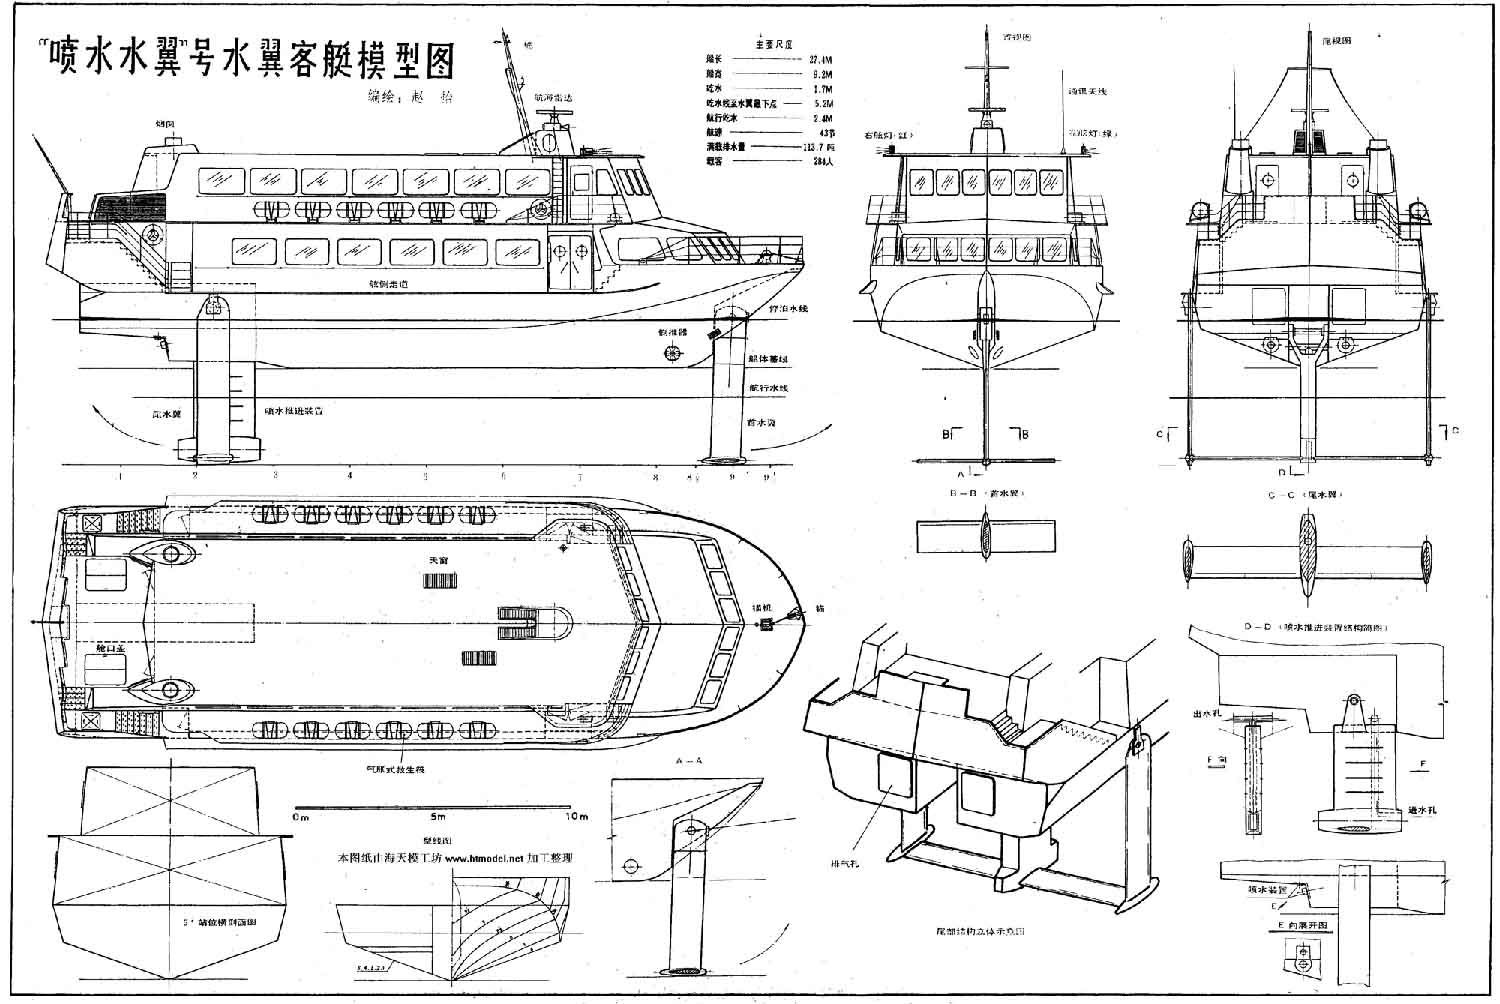 diagram of jetfoil 929 in chinese fast ferry pinterest. Black Bedroom Furniture Sets. Home Design Ideas